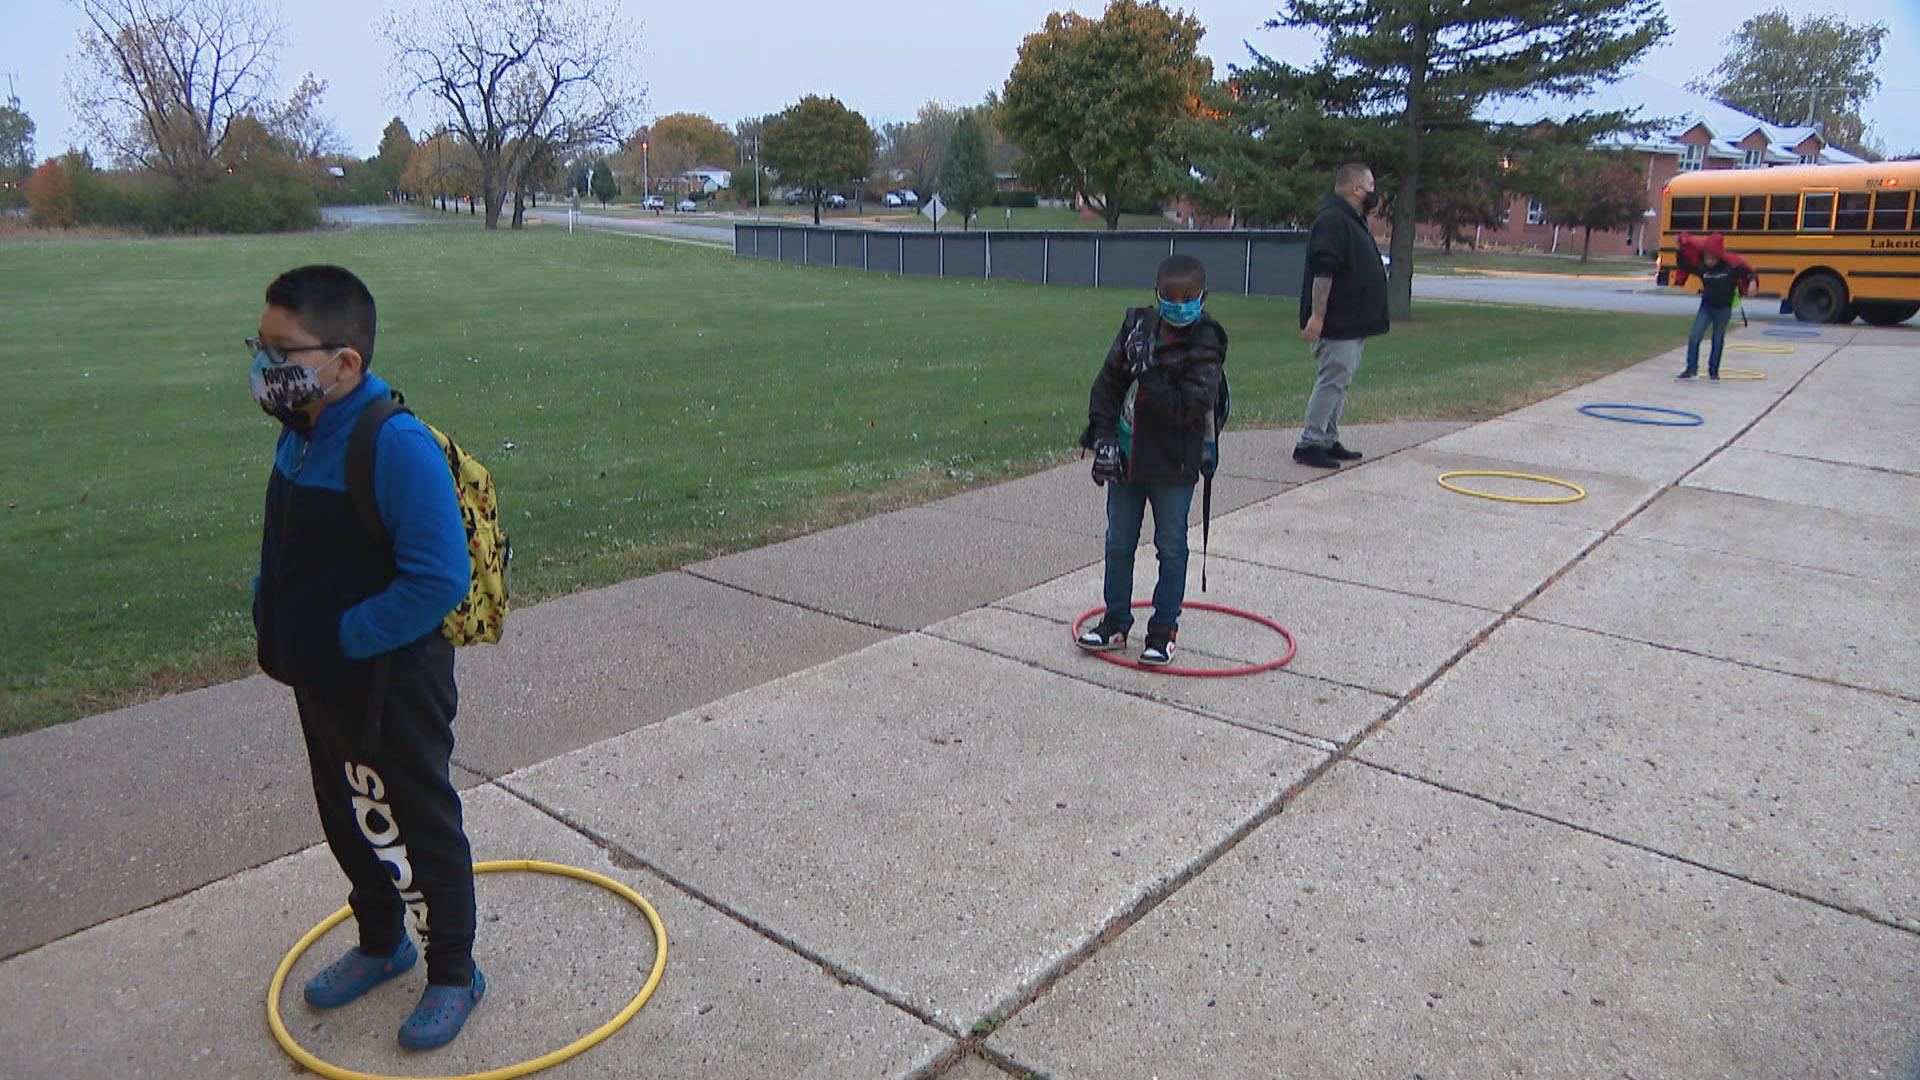 Elementary school students stay socially distanced while lining up to enter A.J. Katenzmaier Academy in North Chicago on Oct. 30, 2020. (WTTW News)